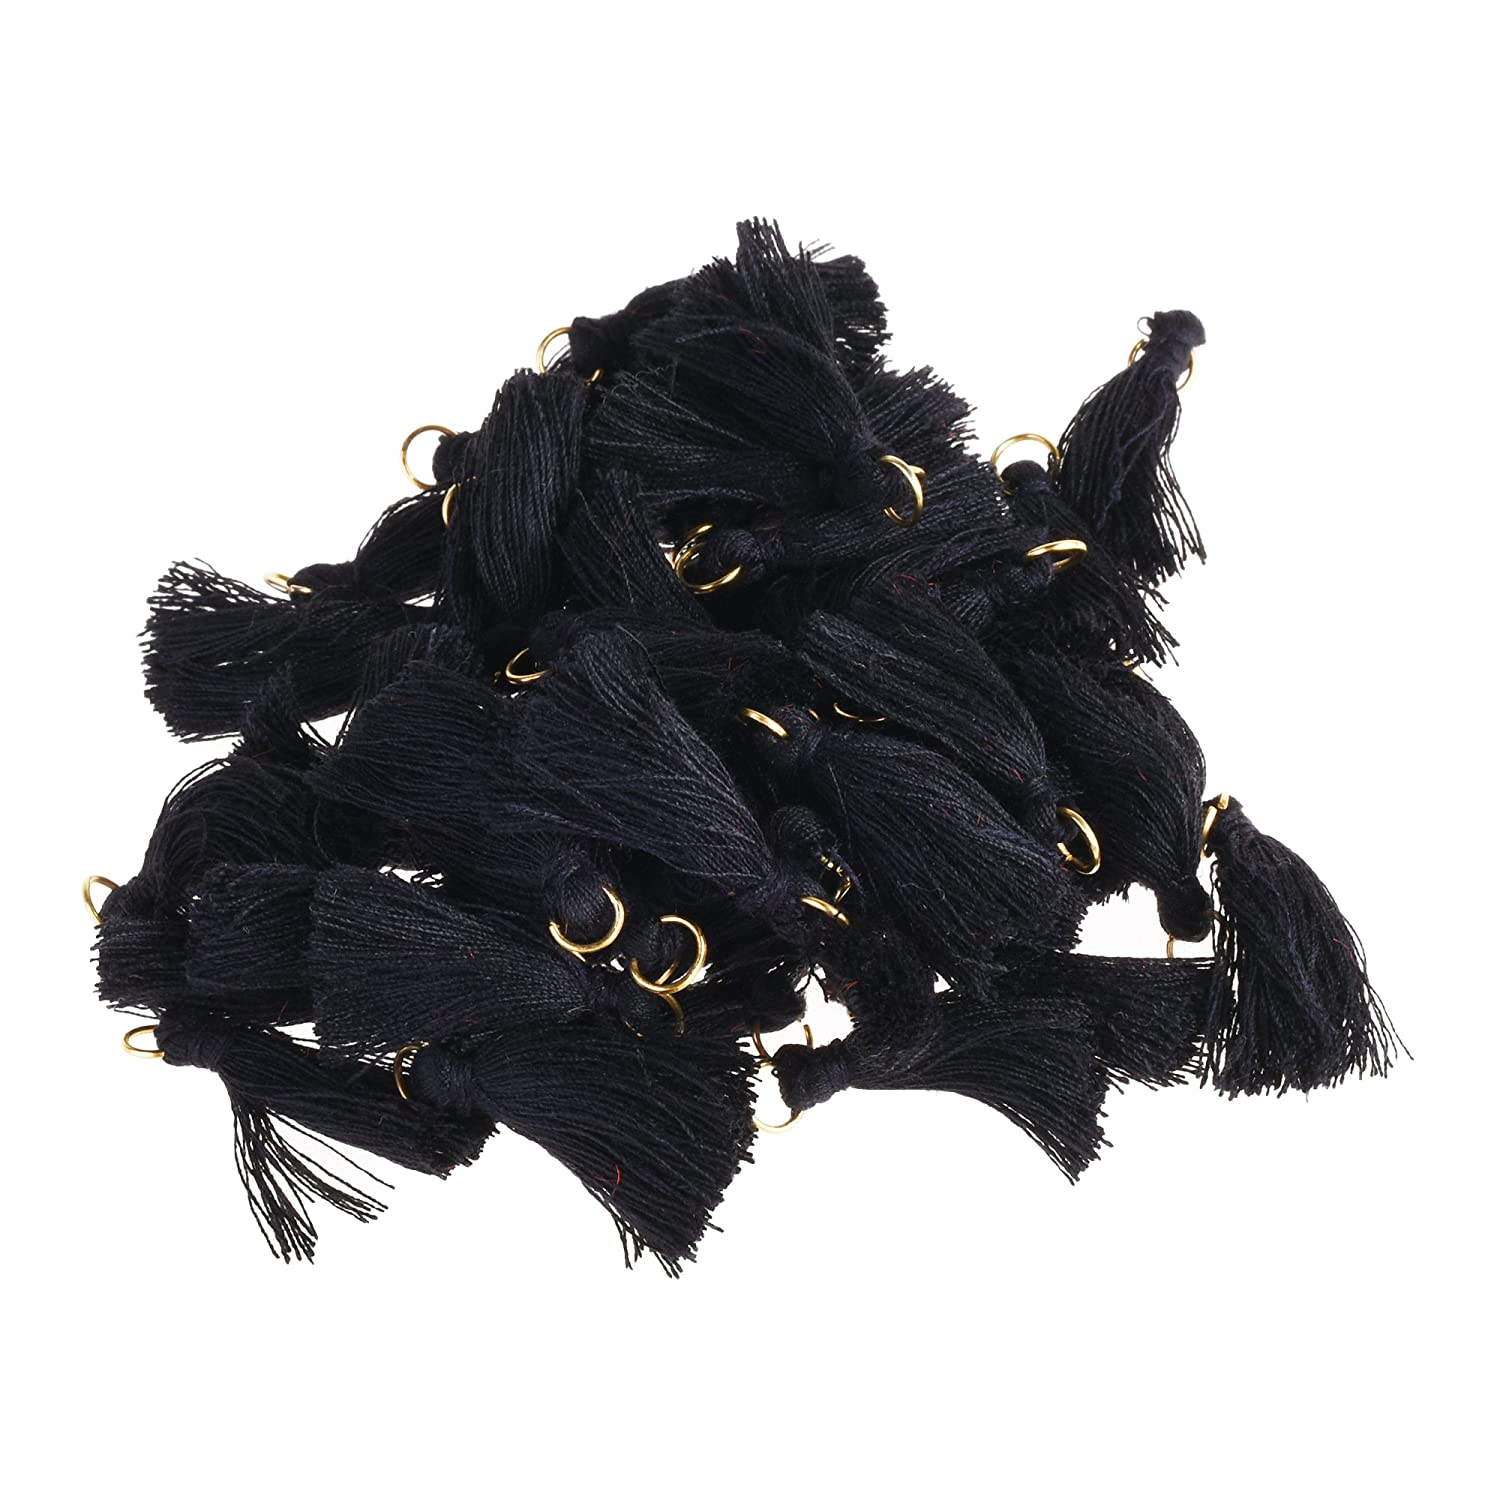 BCP 50PCS Black Color Silky Handmade Tiny Soft Tassels With Golden Jump Ring for Earring DIY Jewelry Making Accessory